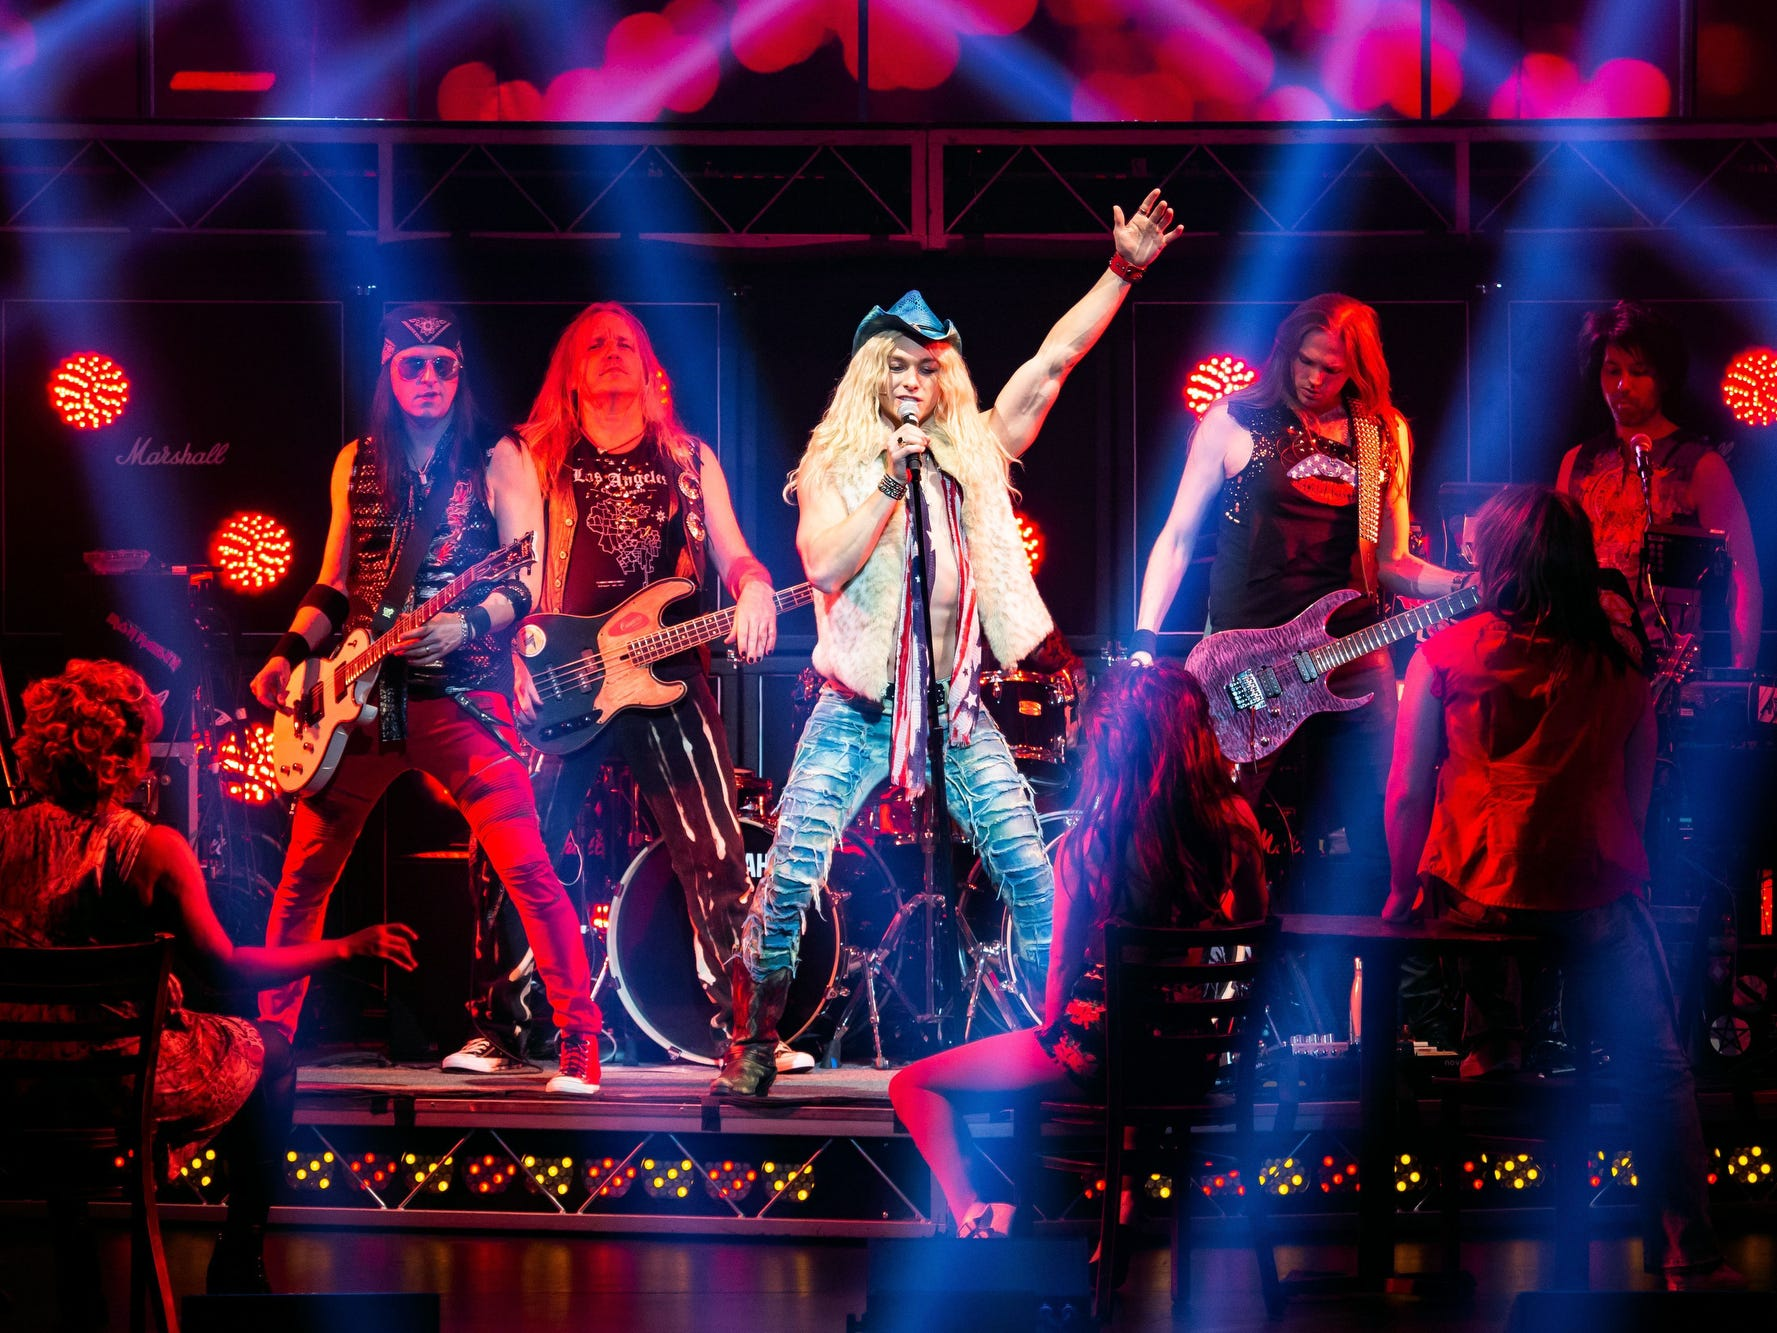 April 12 ROCK OF AGES: Through April 13, Tennessee Performing Arts Center, $30-$65, tpac.org